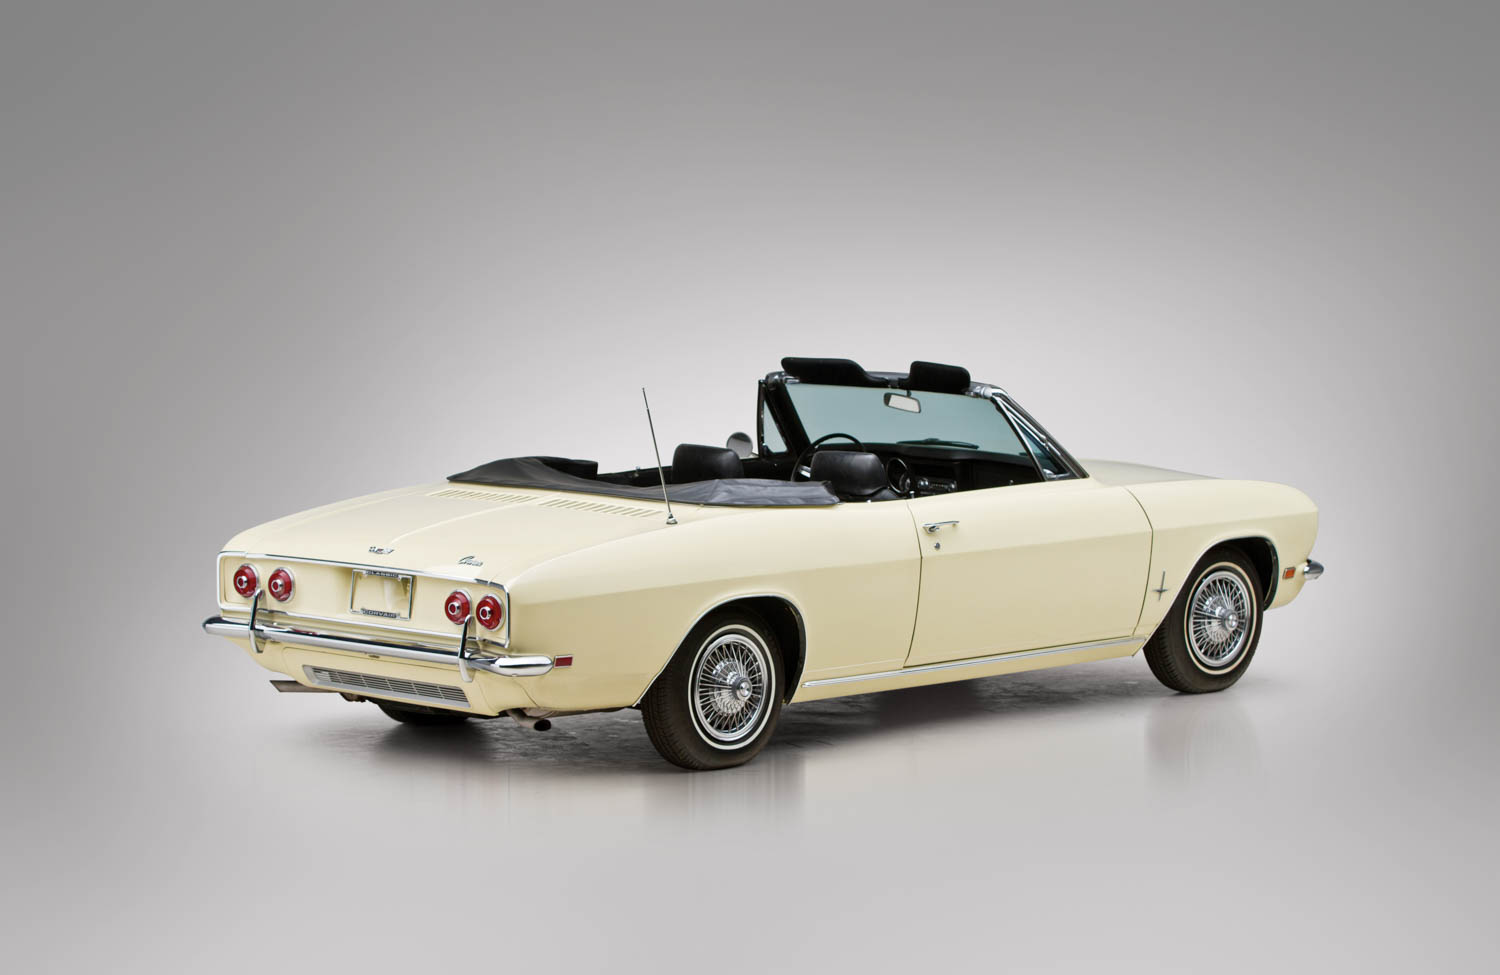 1969 Chevrolet Corvair Monza Convertible Coupe